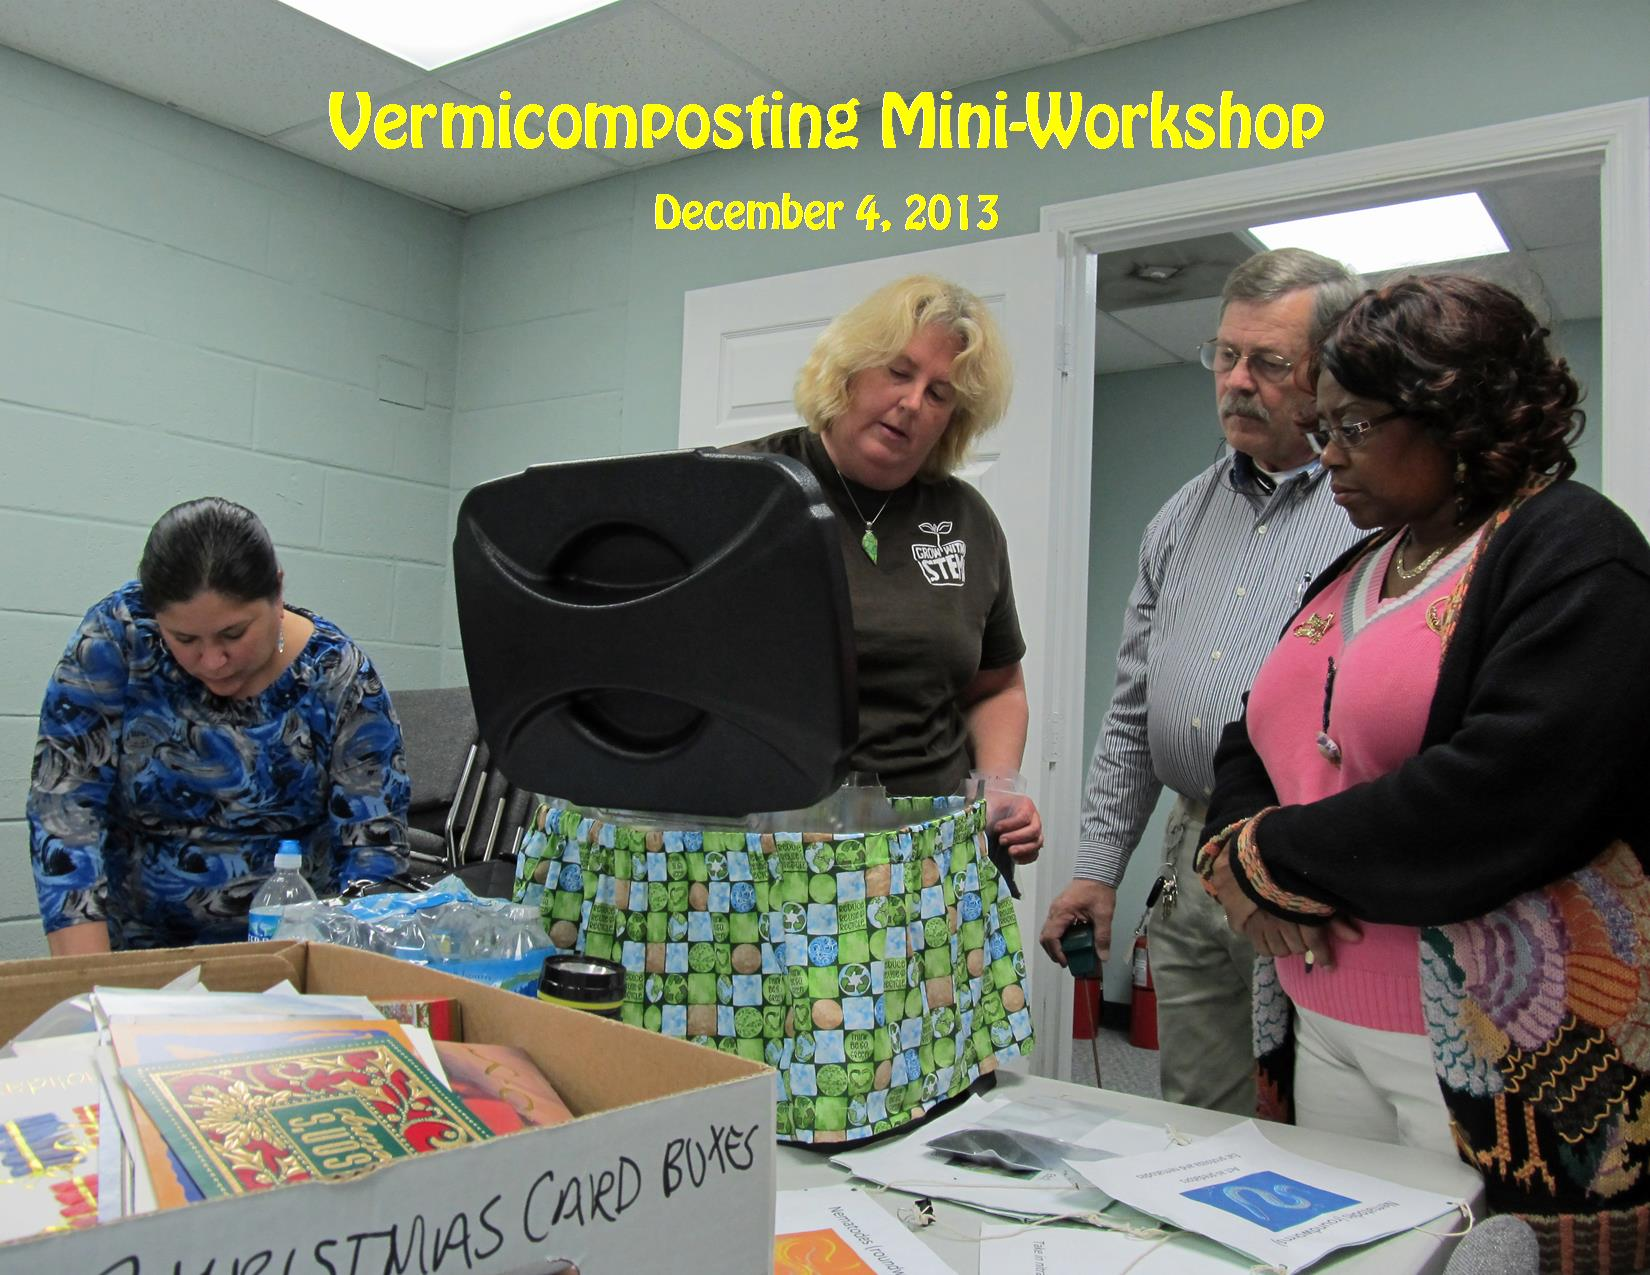 12-4-13 Vermicomposting Mini-Workshop